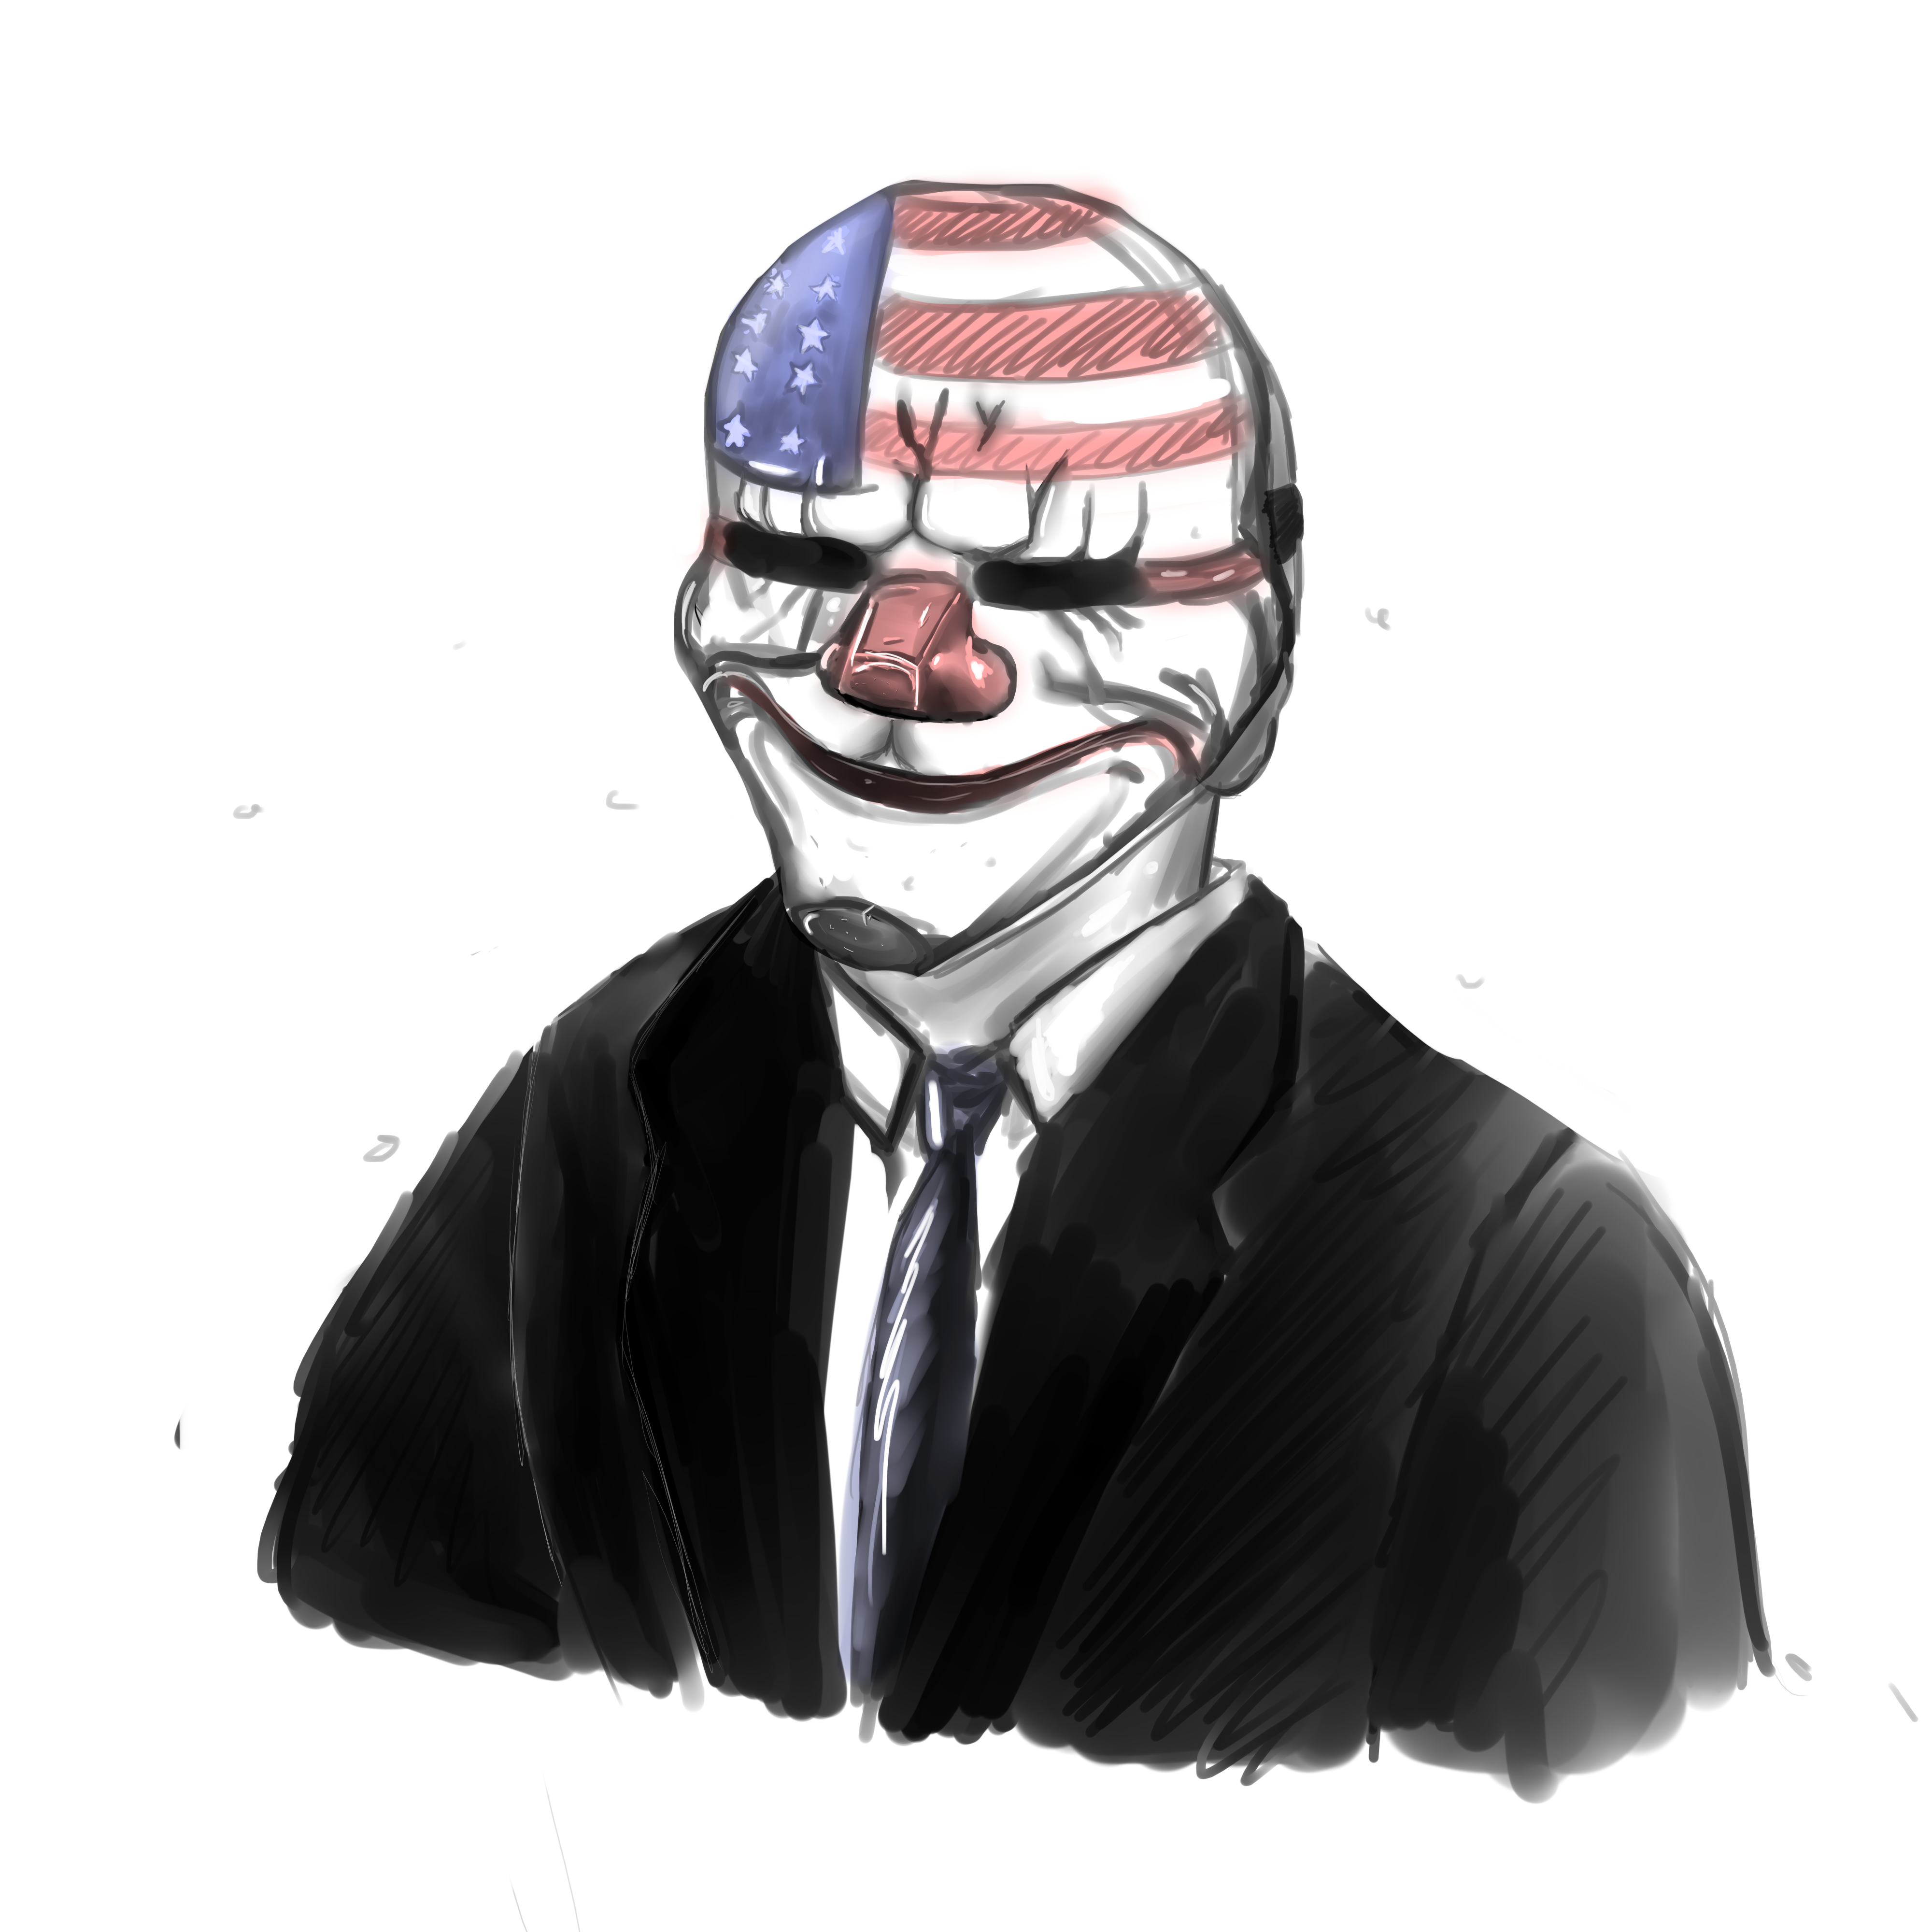 Buy Here Pay Here Dallas >> Payday 2 - Dallas Sketch by TehSasquatch on DeviantArt